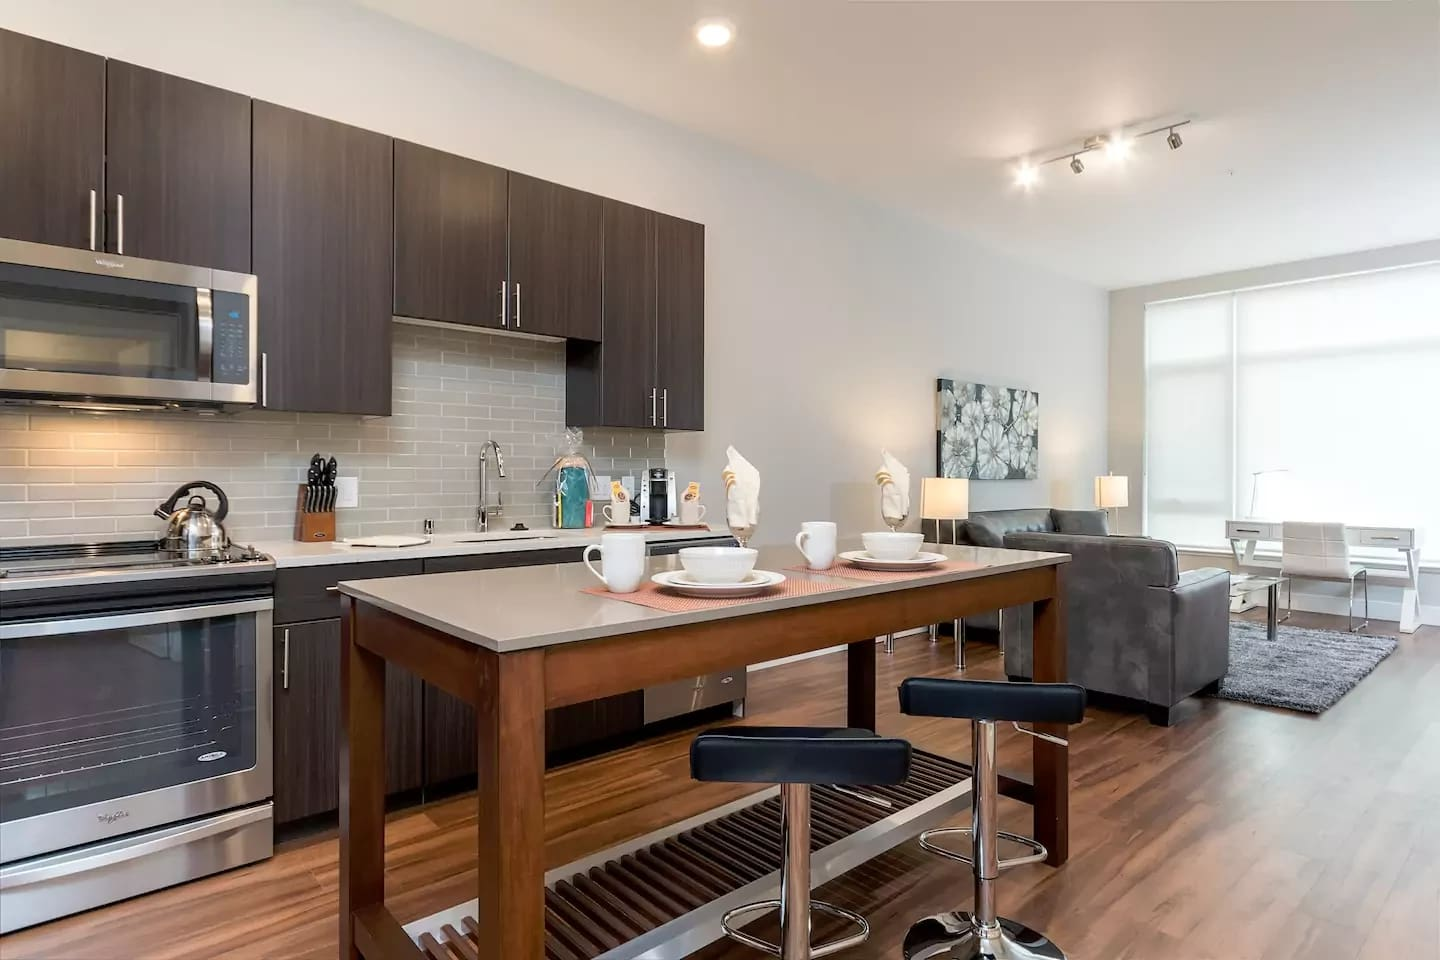 Fully equipped kitchen with stainless steel appliances, pots, pans and dishes